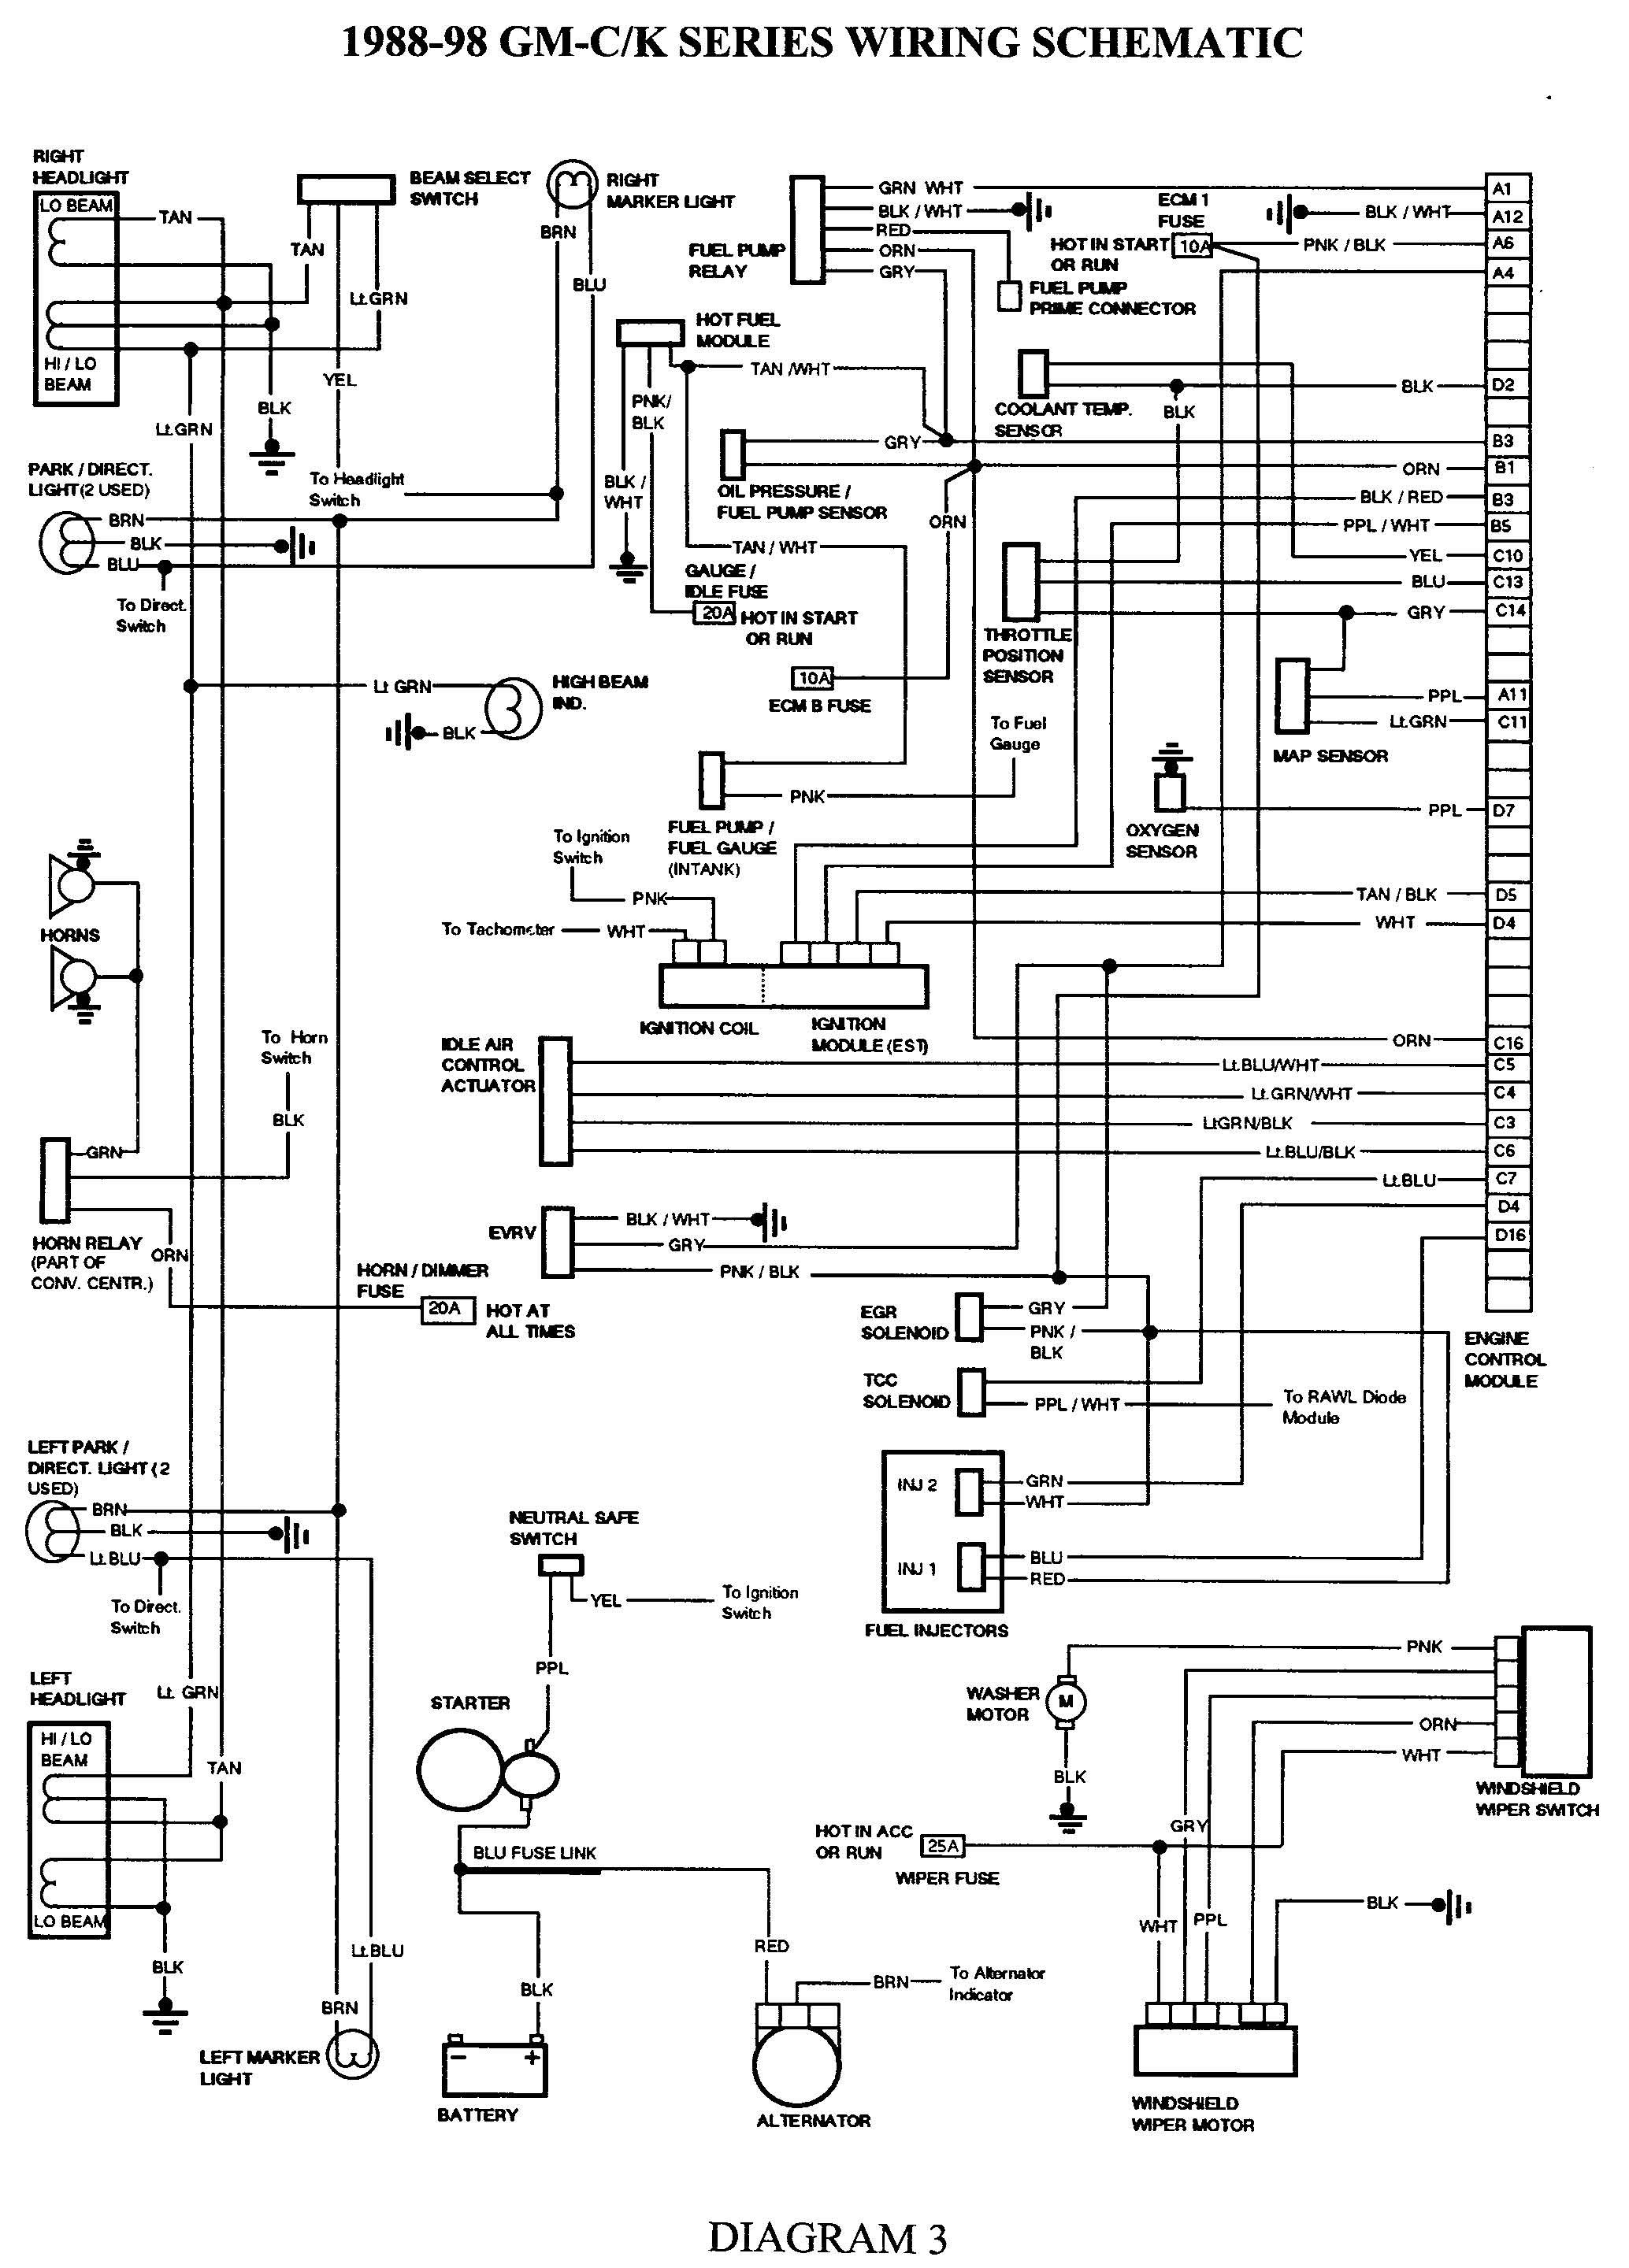 DIAGRAM] 2002 Gm Wiring Diagrams For Dummies FULL Version HD Quality For  Dummies - DIAGRAMSENTENCE.ABETEECOLOGICO.ITdiagramsentence.abeteecologico.it